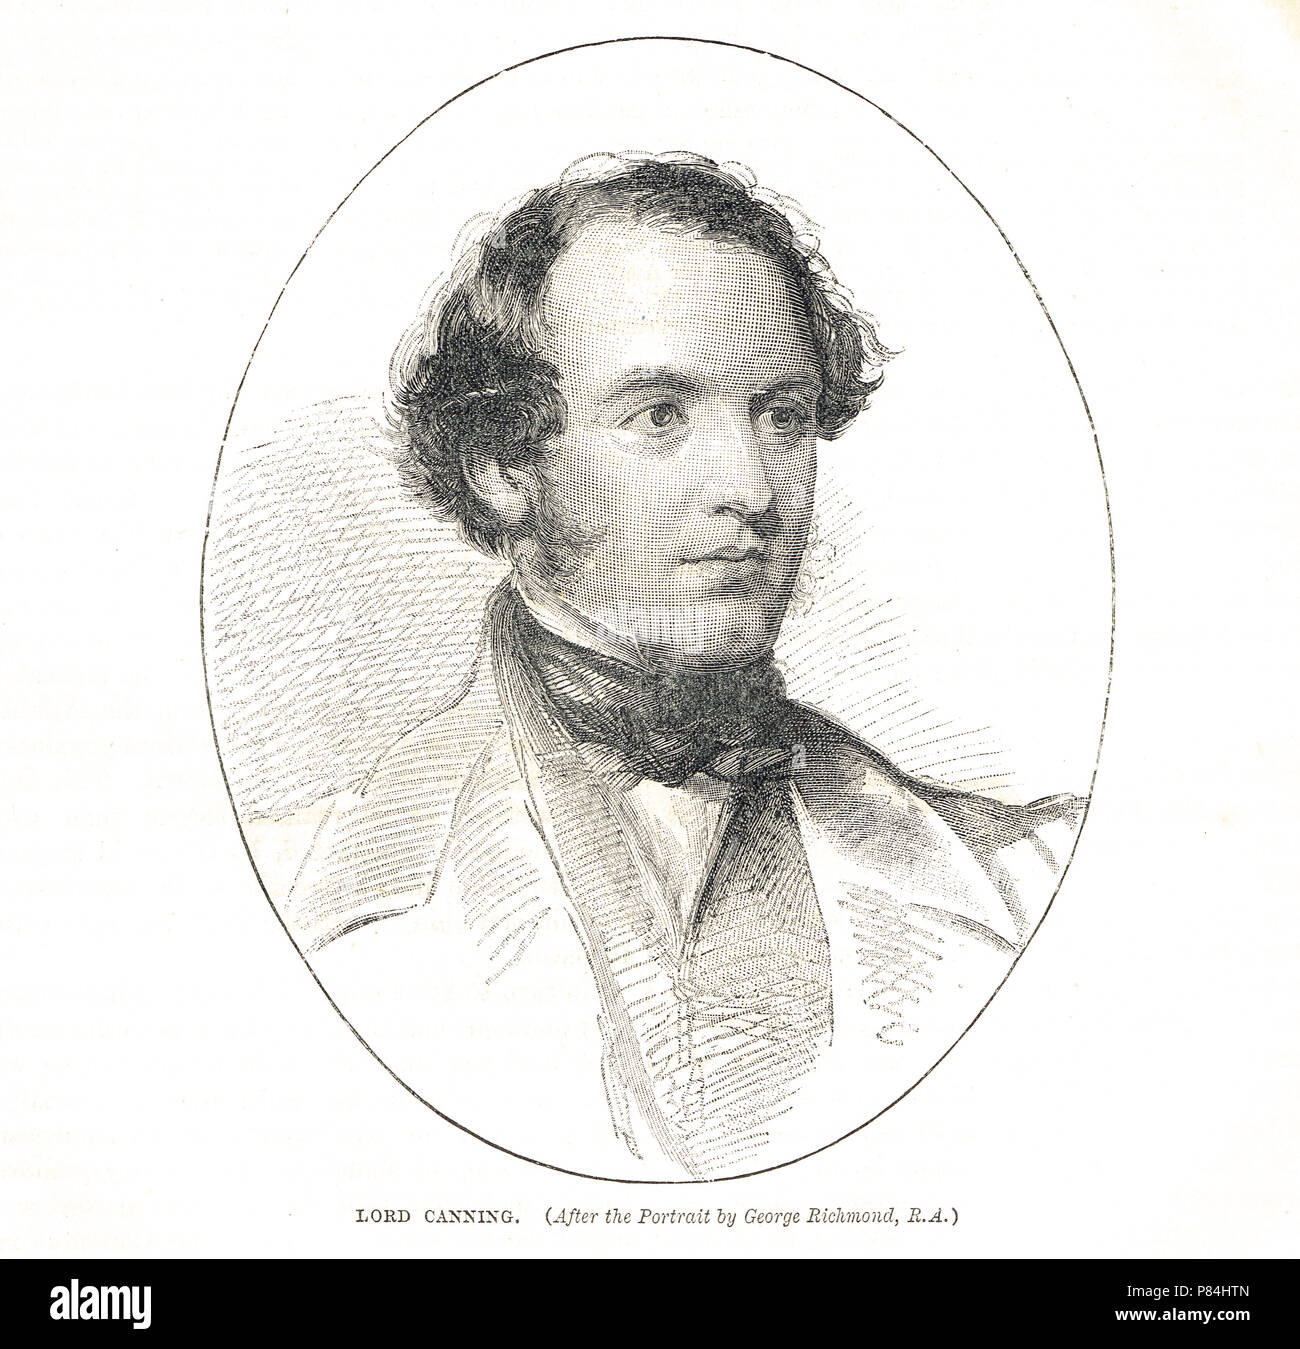 Charles Canning, 1st Earl Canning , Governor-General of India during the Indian Rebellion of 1857, and the first Viceroy of India - Stock Image